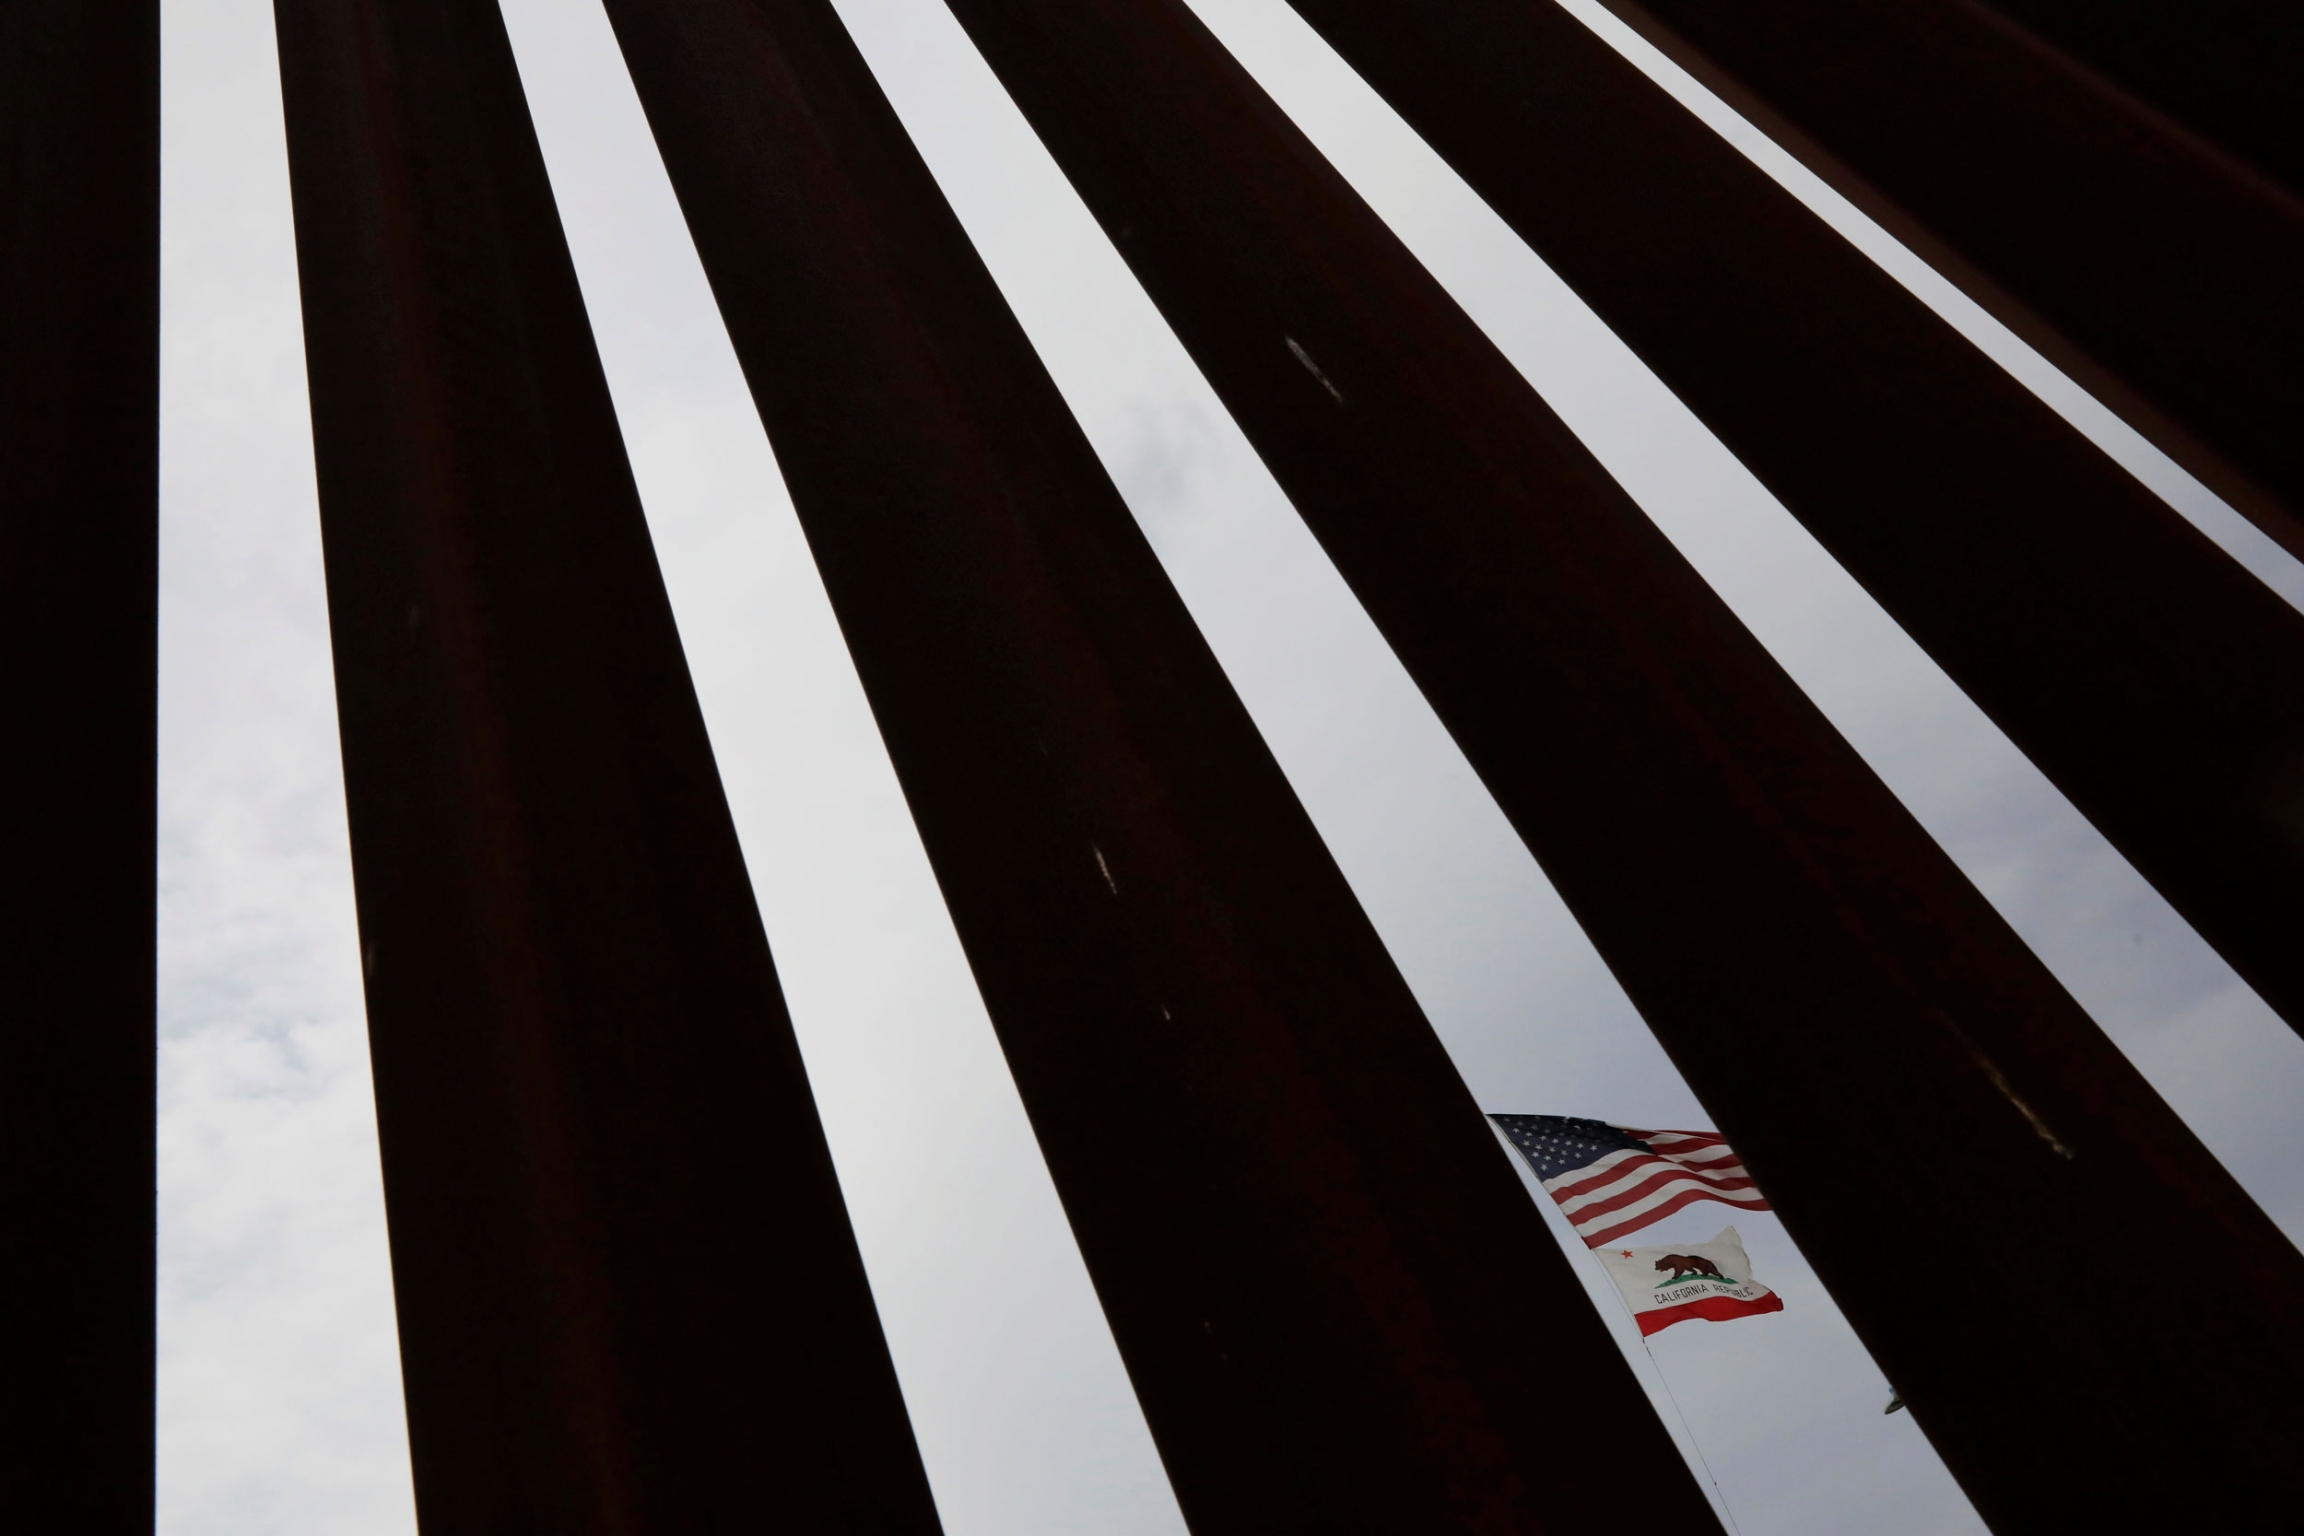 A photograph with dark metal slats are shown in contrast to the blue sky in-between with the US and California flags in one of the slots.